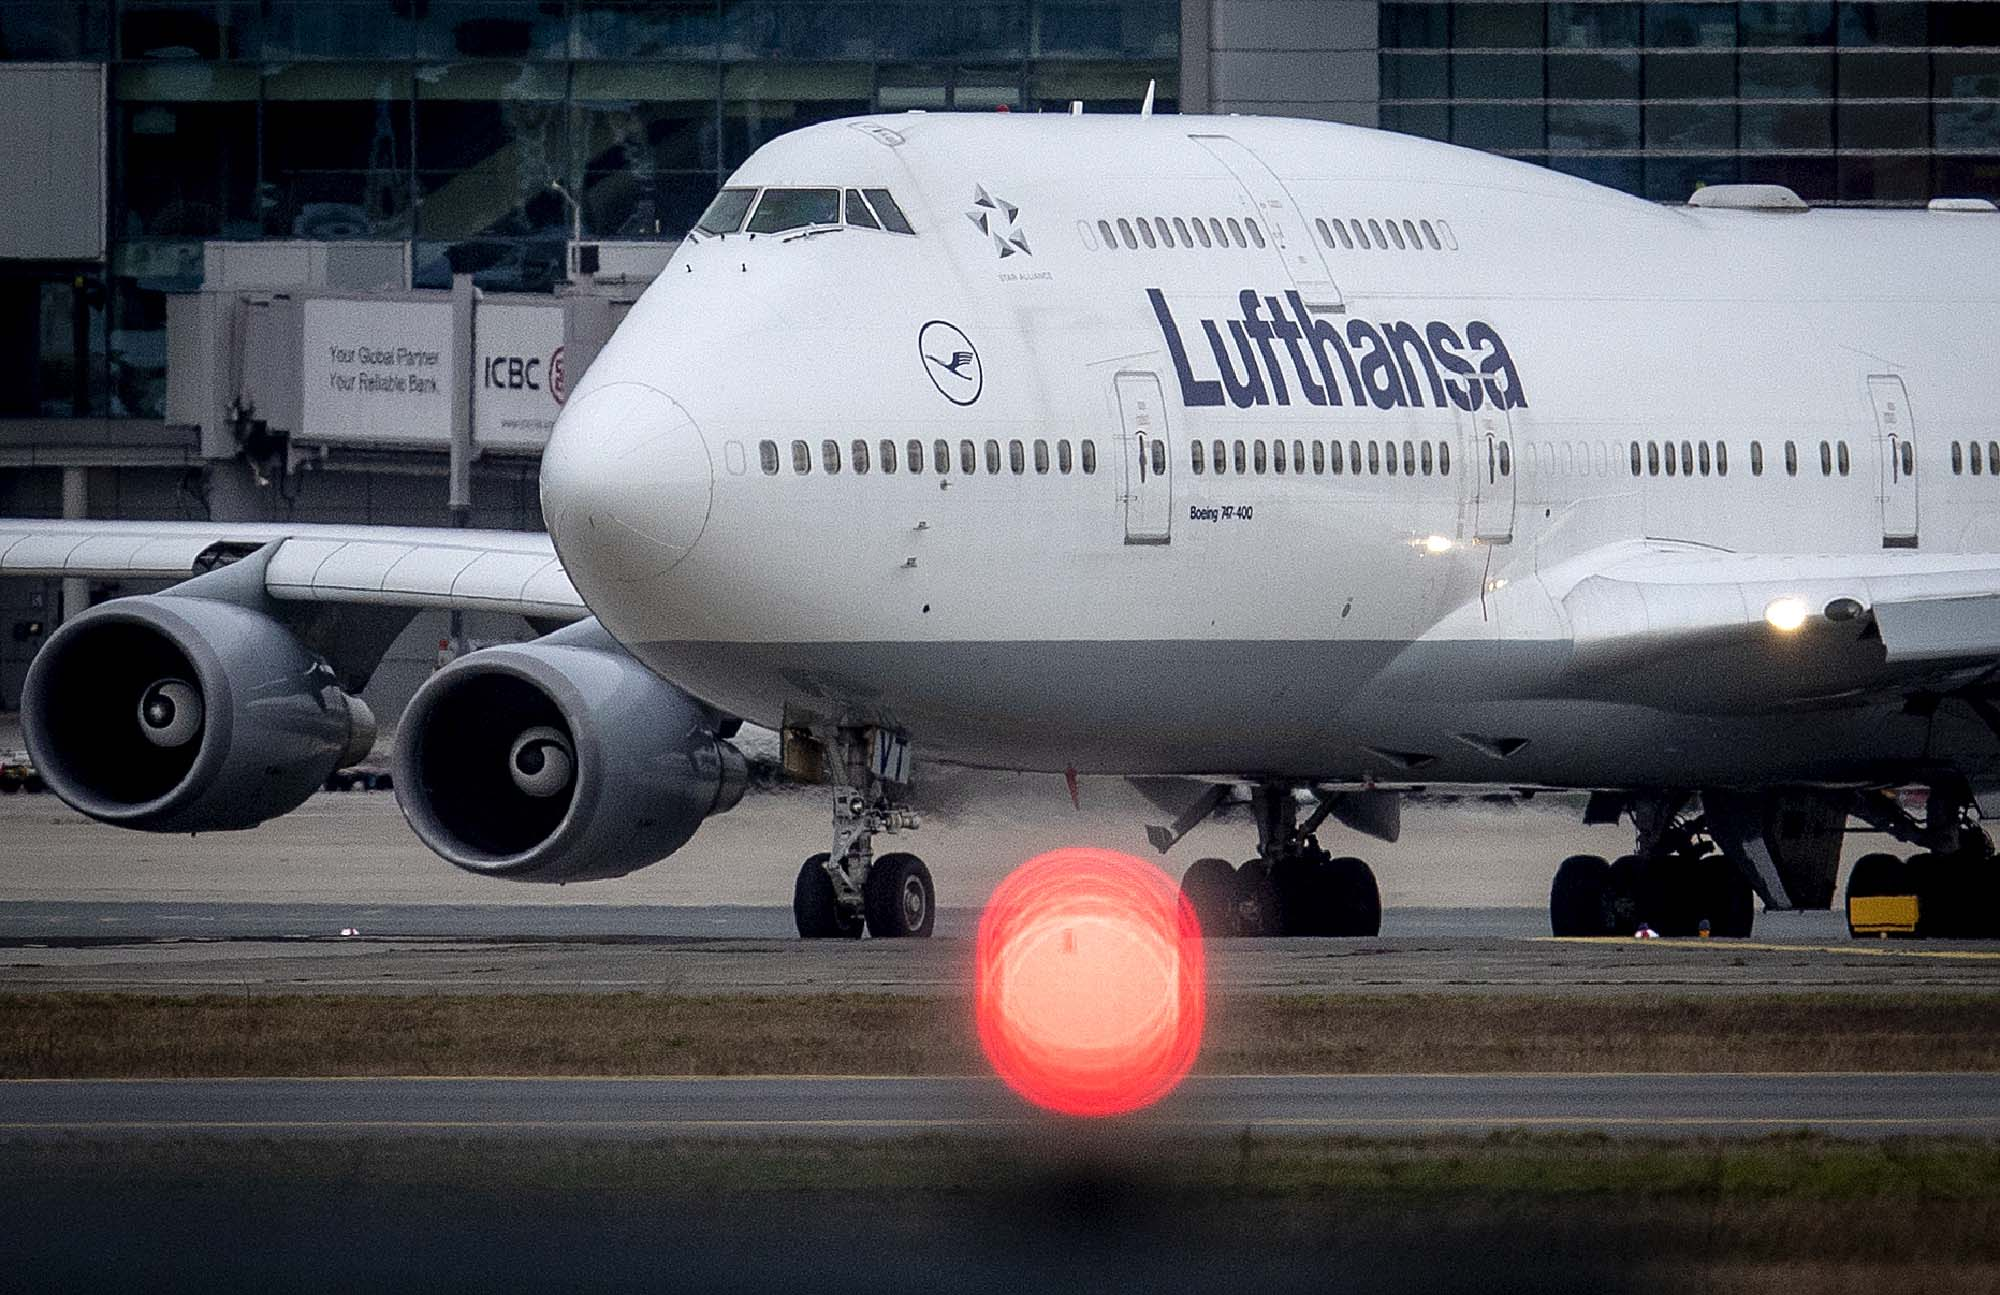 A Lufthansa plane rolls over the runway at an airport in Frankfurt, Germany, on March 1.